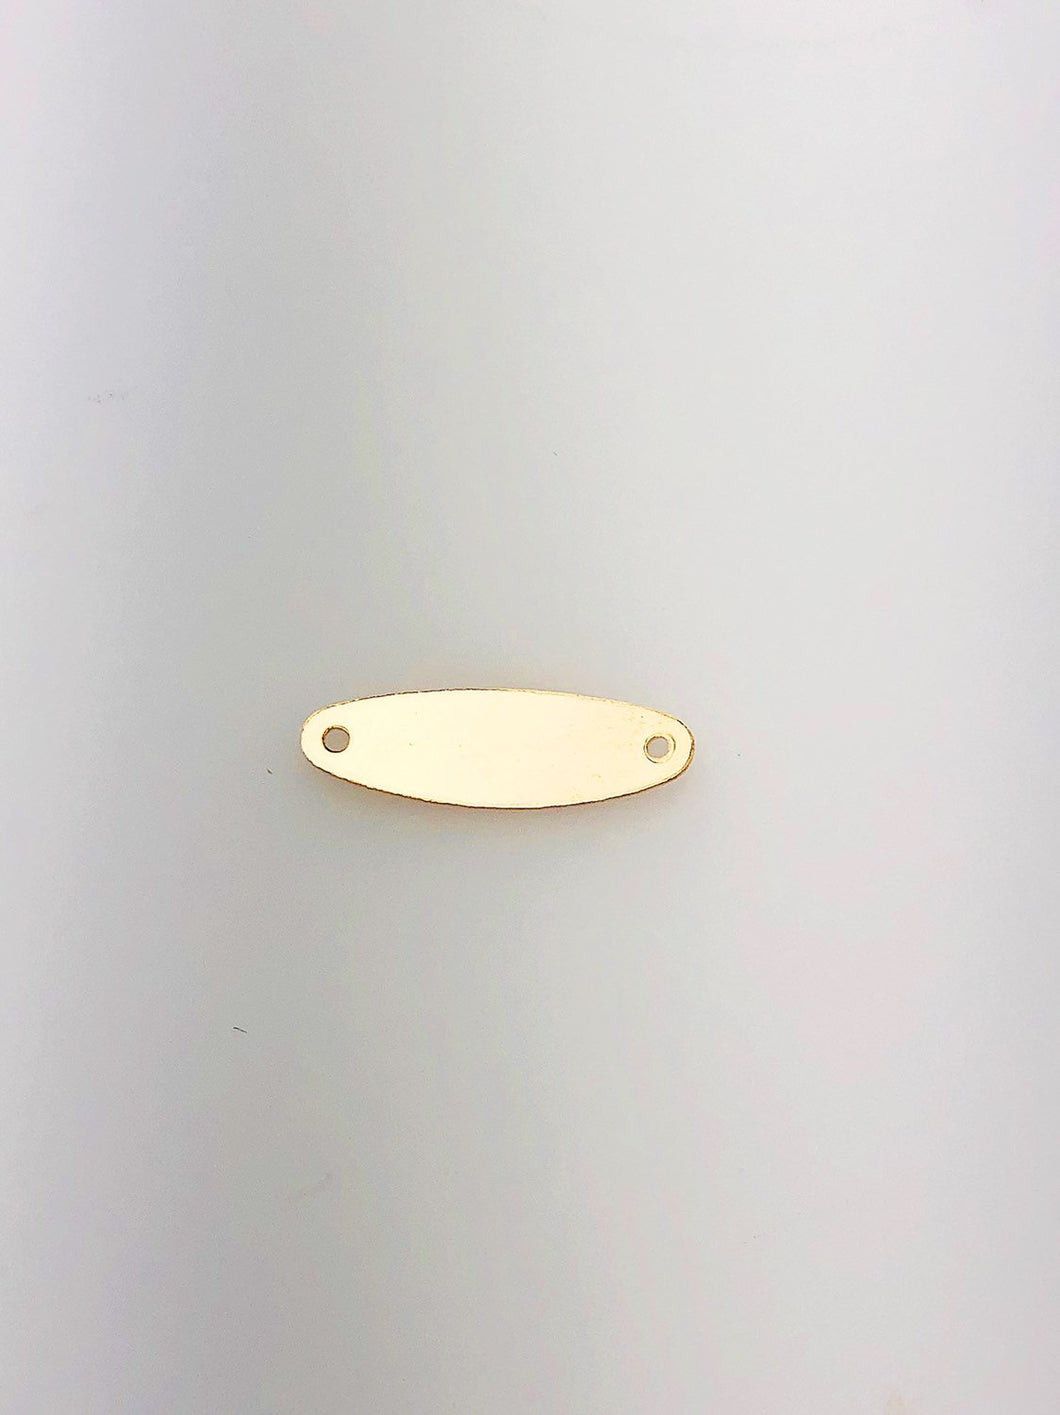 14K Gold Fill Rounded Tag Charm w/ Two Holes, 6.0x19.1mm, Made in USA - 2451 0	0	$0